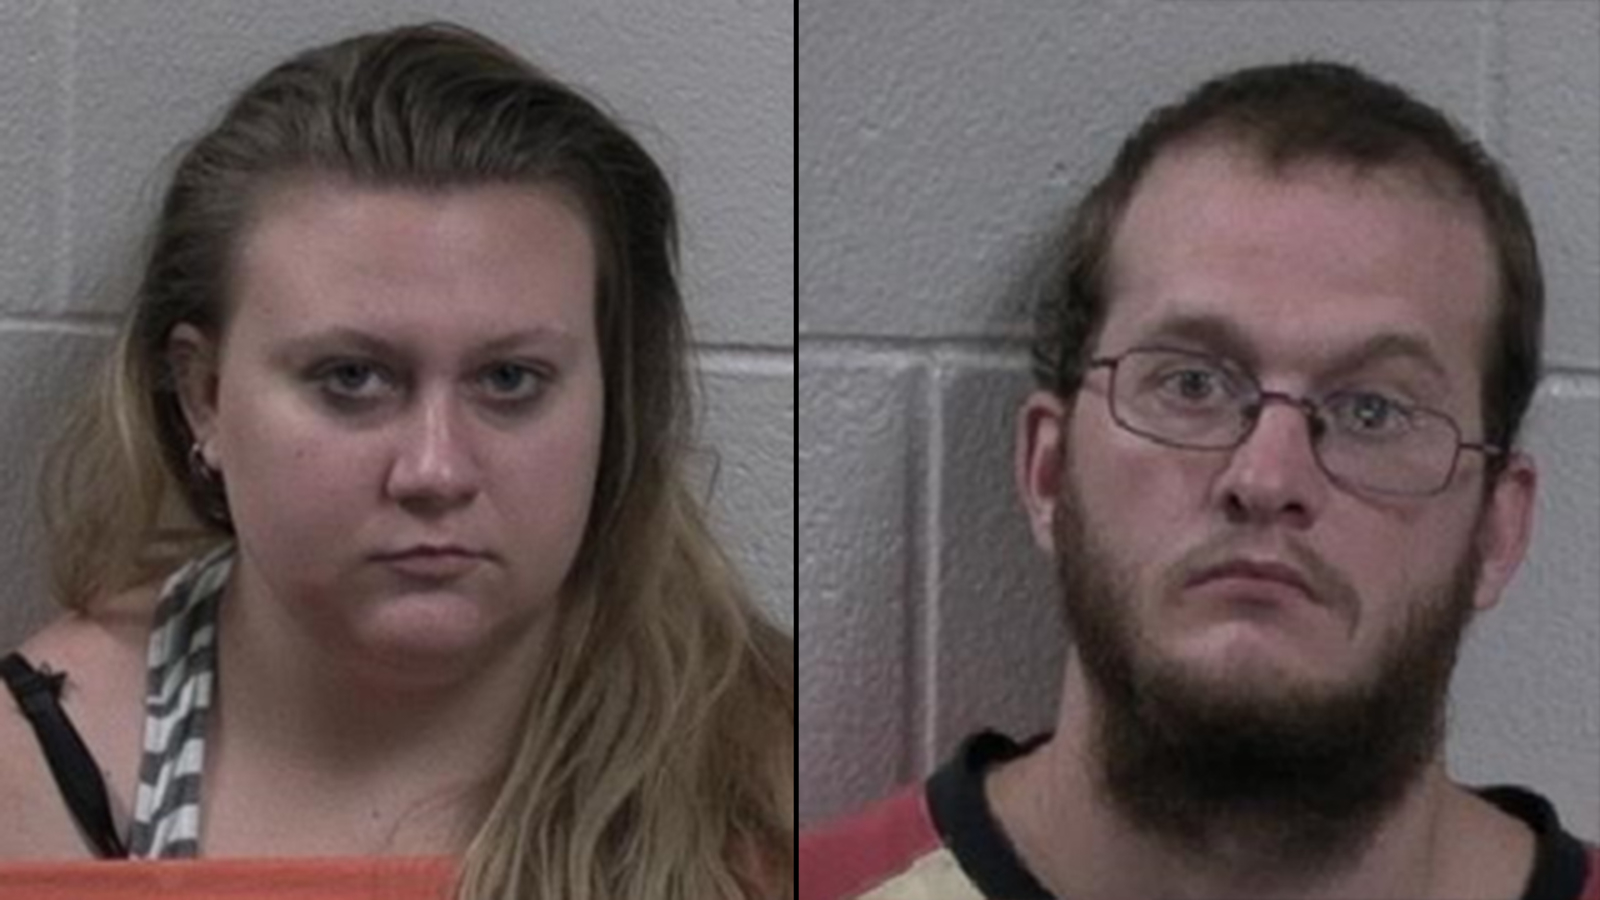 Georgia brother and sister face incest charges after